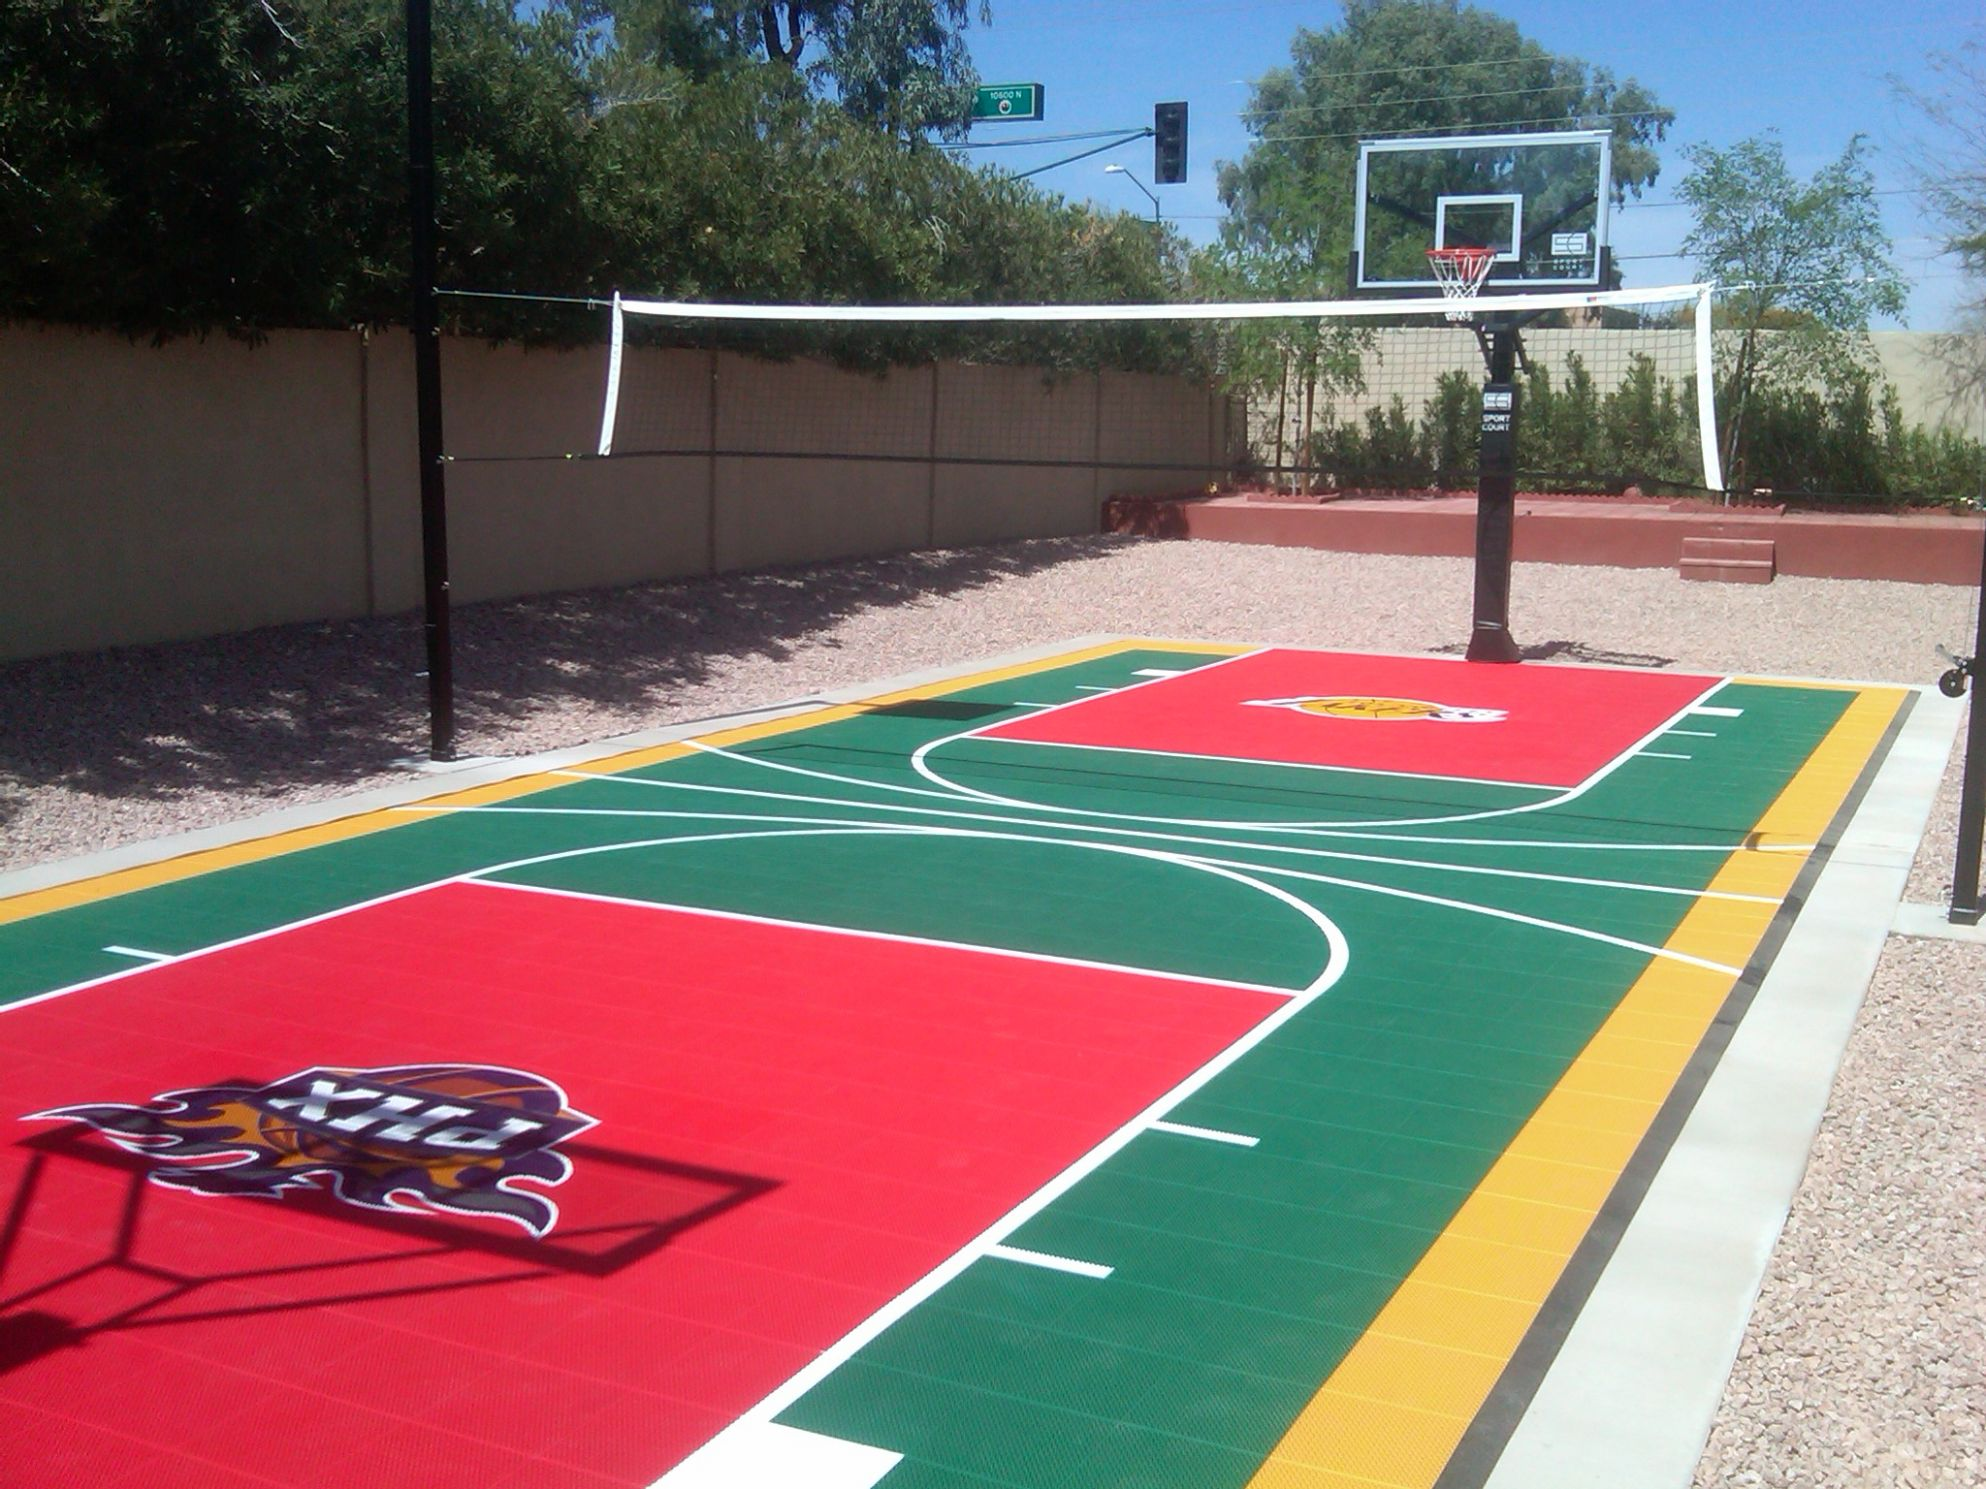 Swimming pool designs for volleyball | Apartments - backyard volleyball ideas